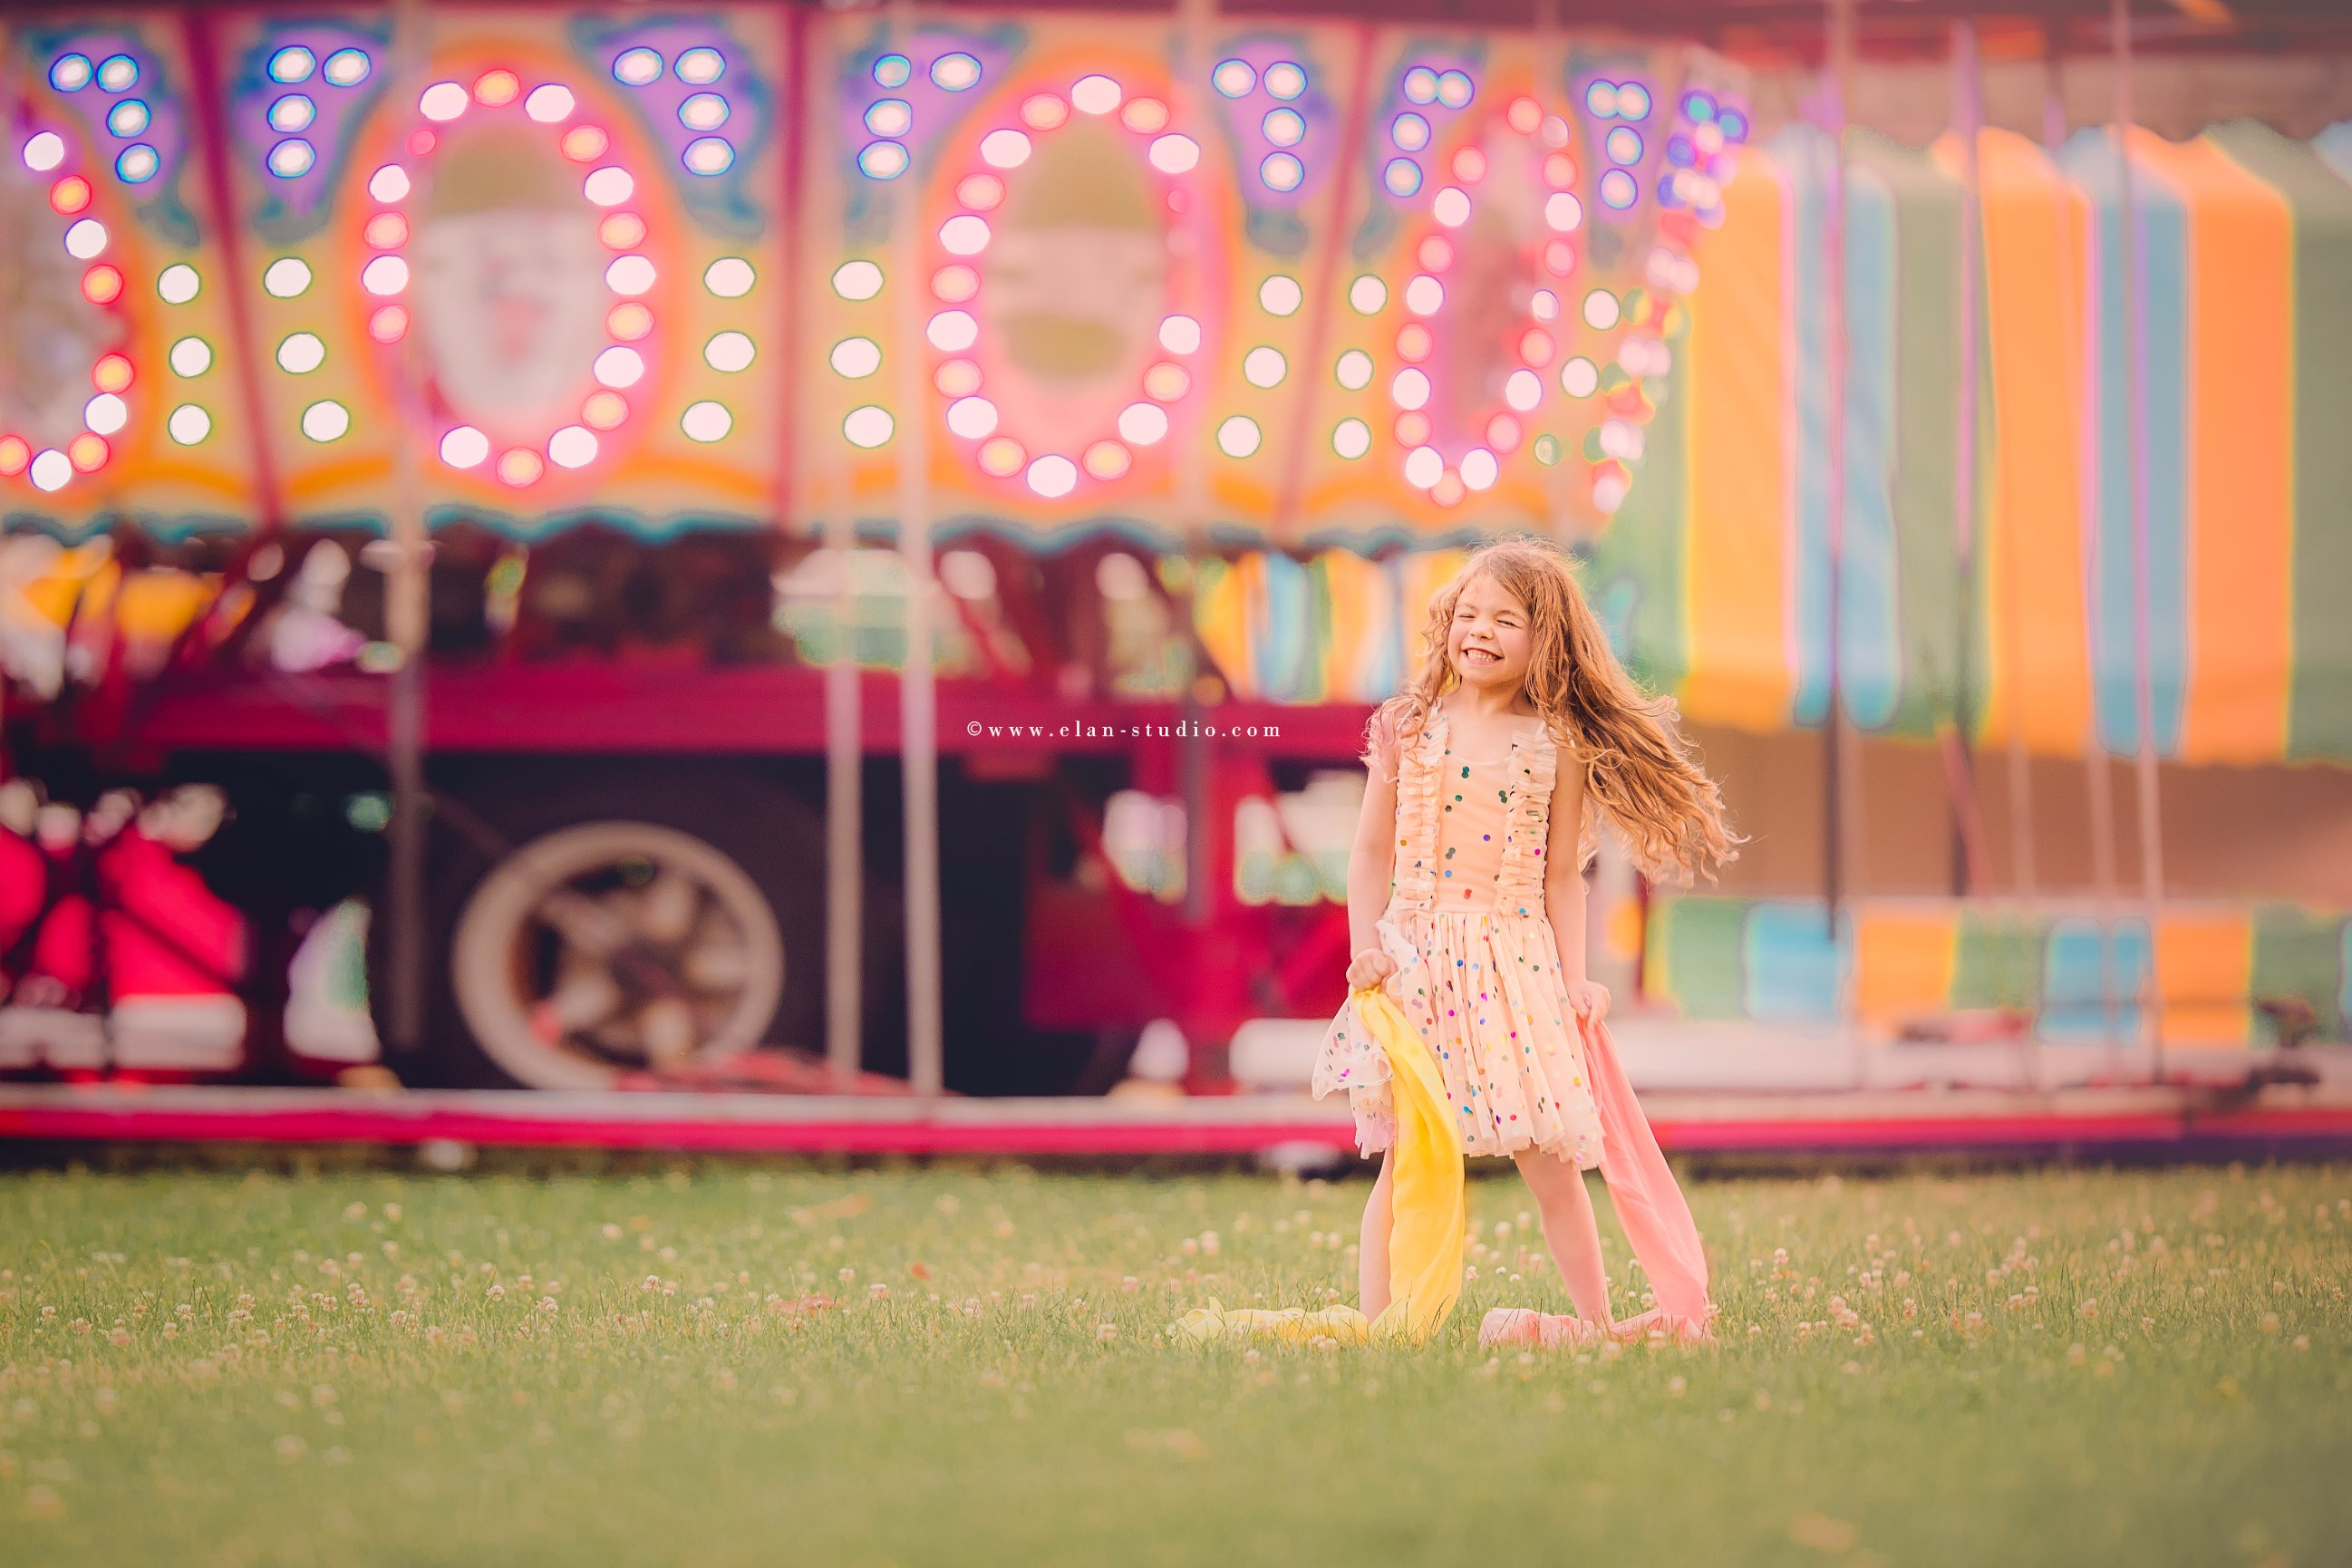 little girl with long hair, on grass at circus, with carousel behind her